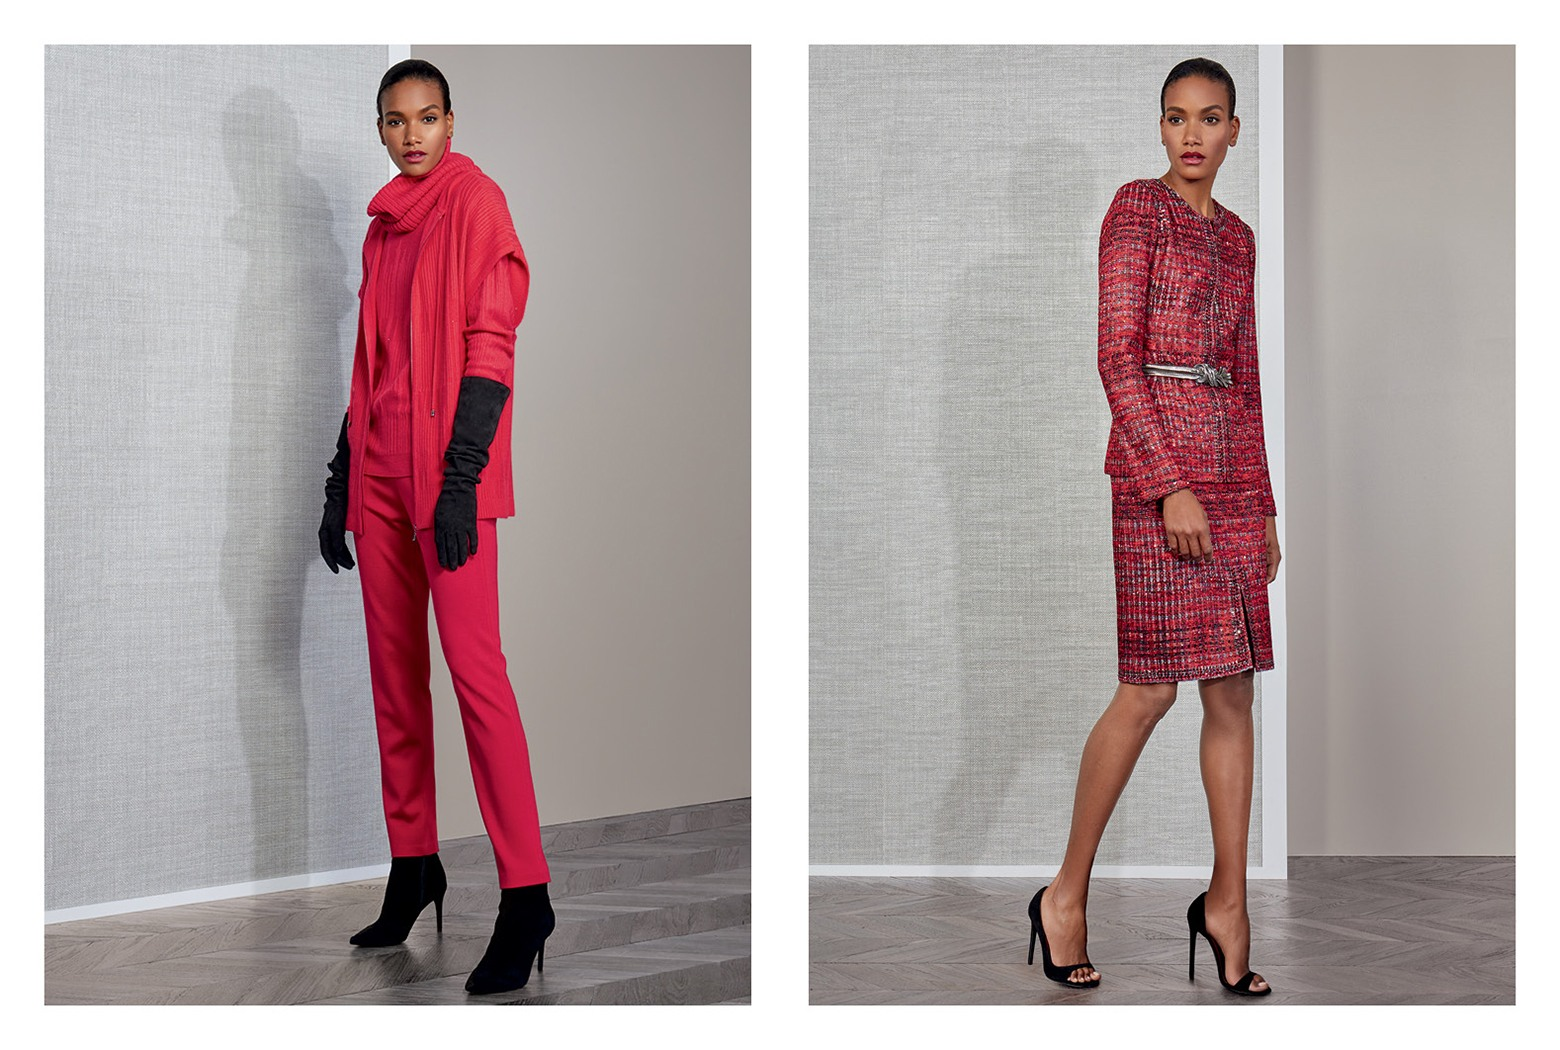 Saint John Fall 2018 lingonberry cashmere jacket and knit jacket and skirt set